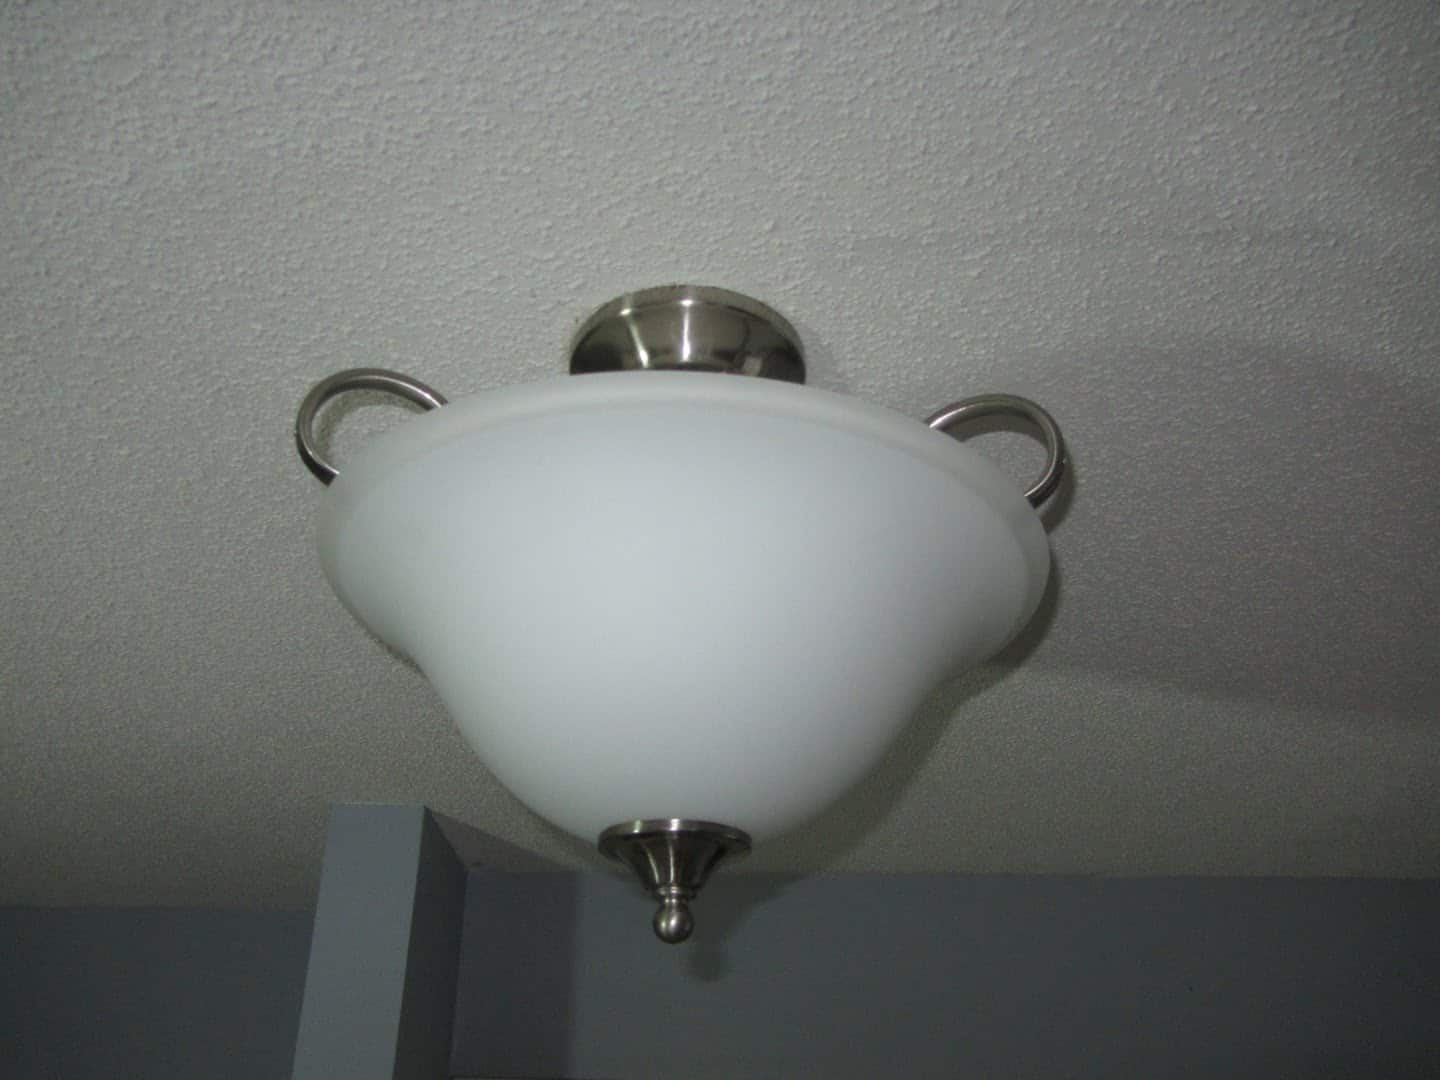 Wiring Light Fixture To Ceiling